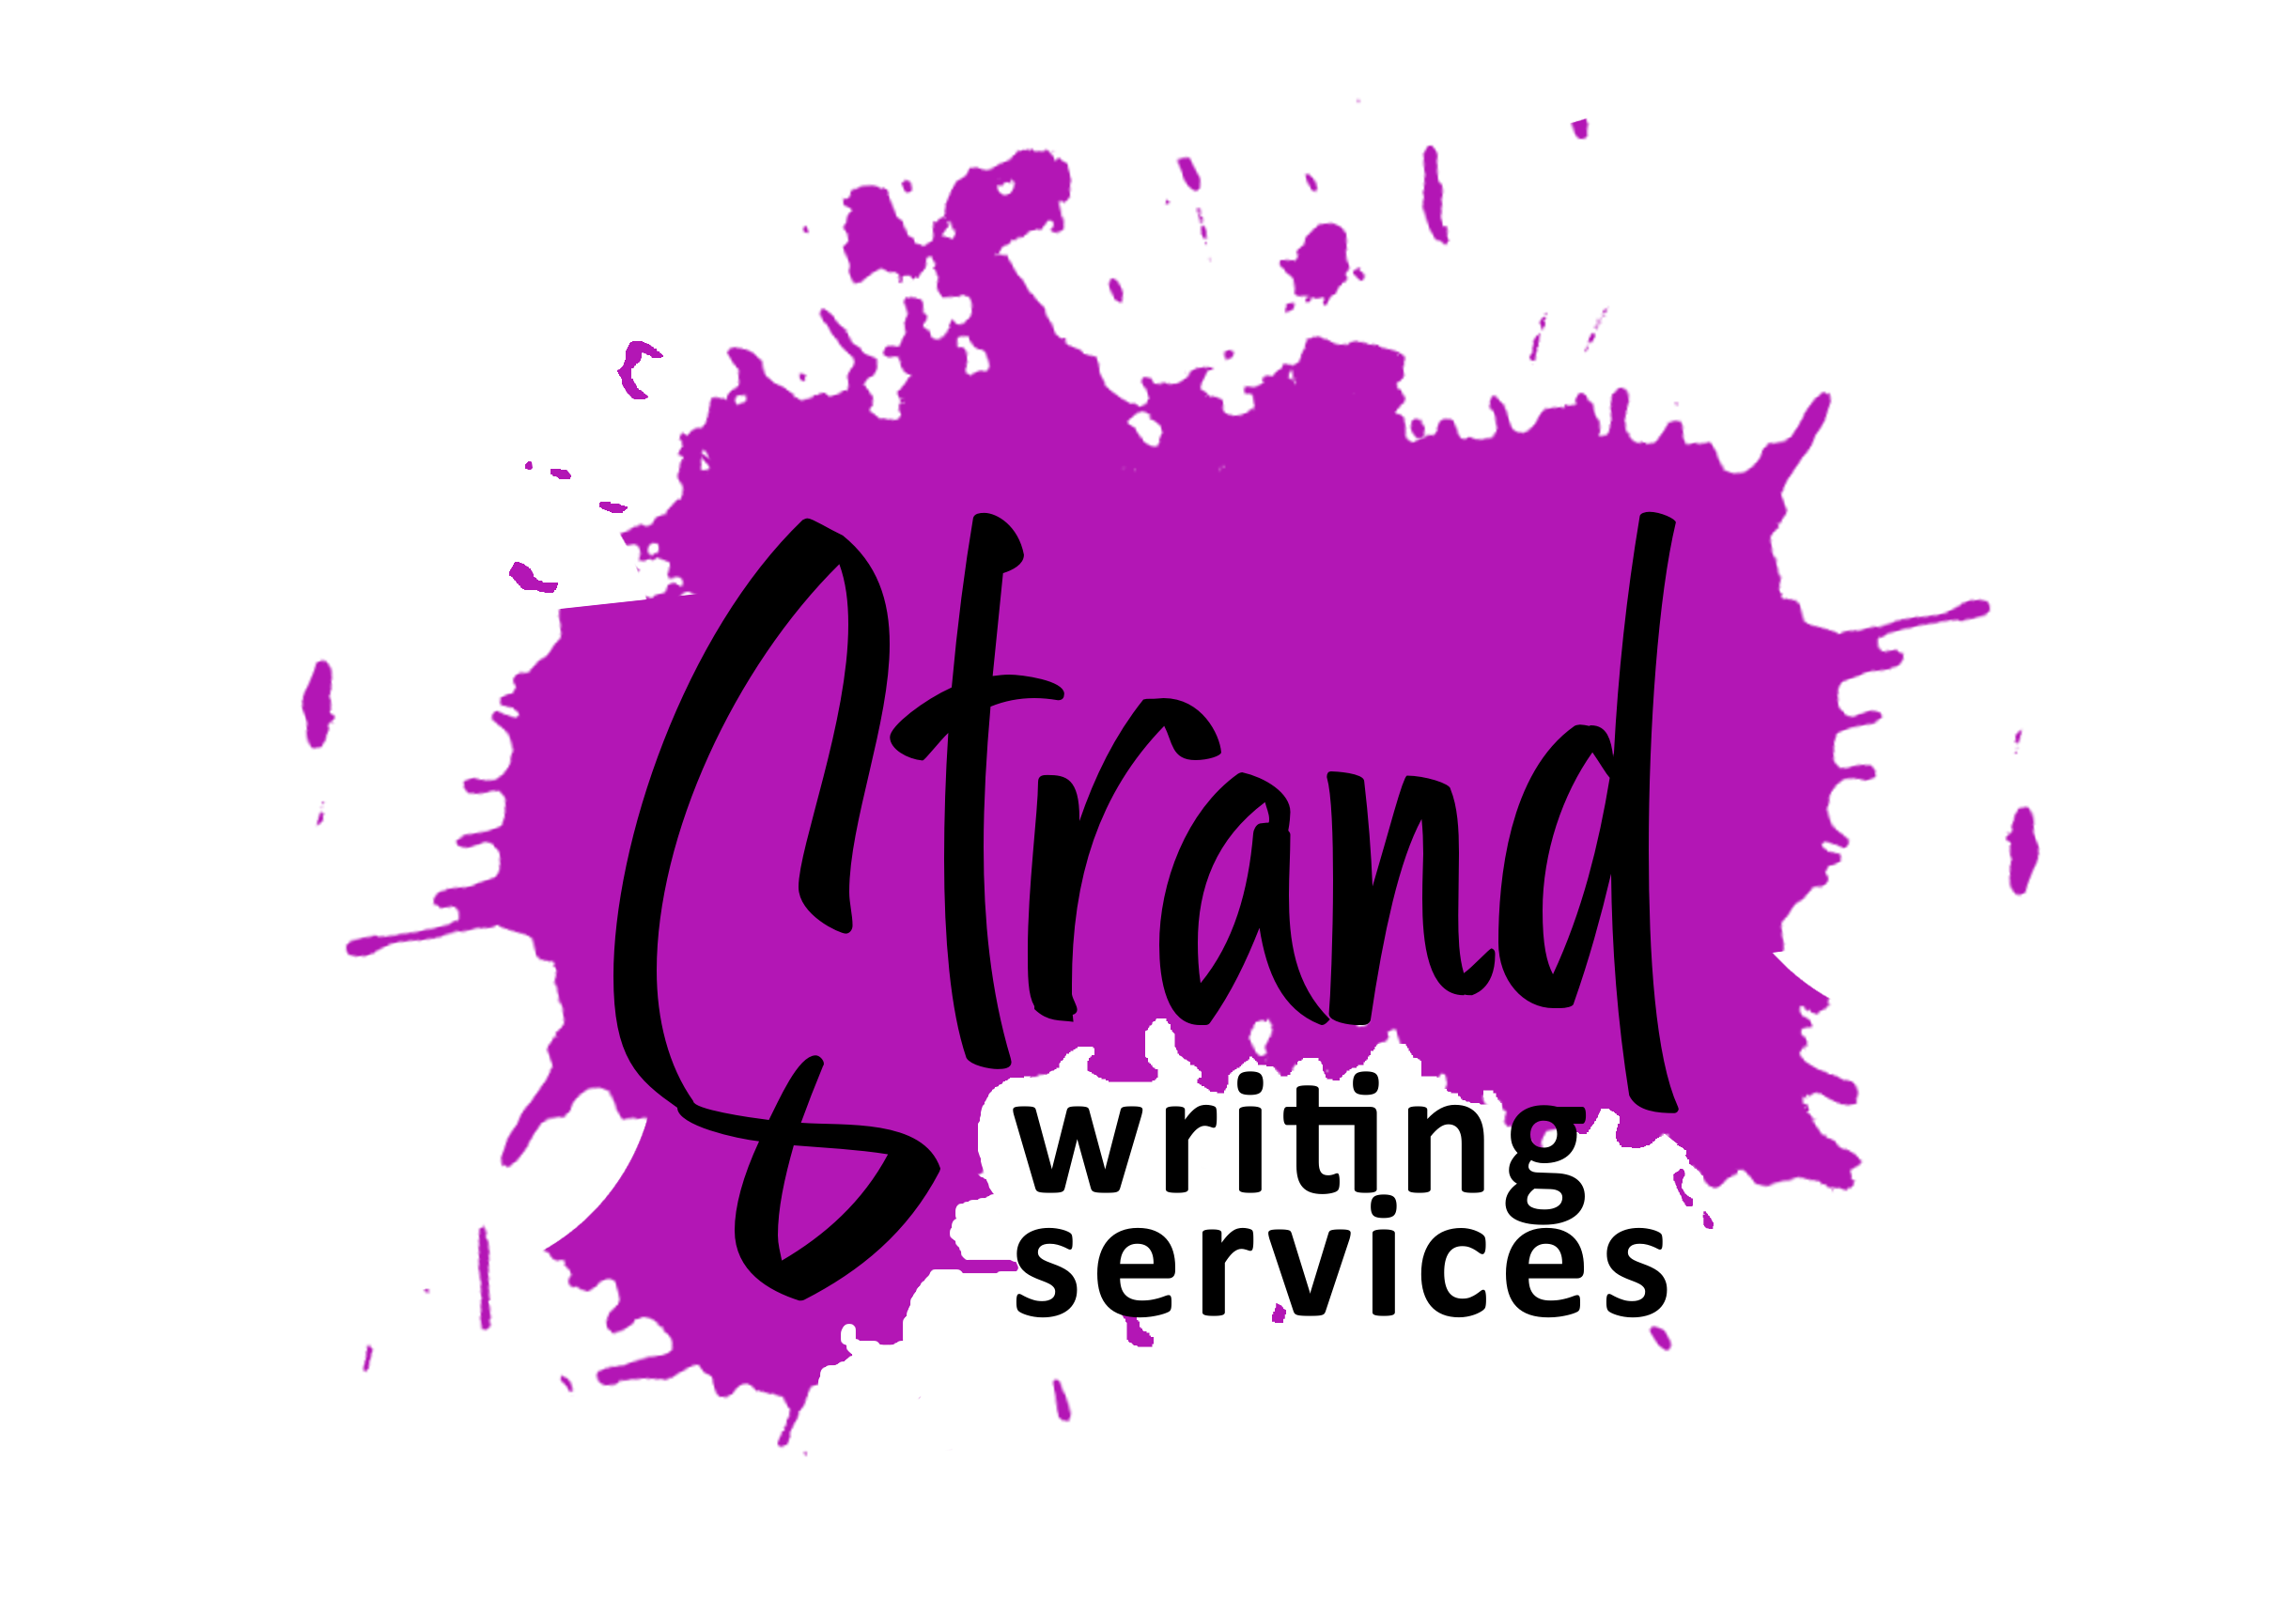 Strand Logo - HQ - Transparent.png